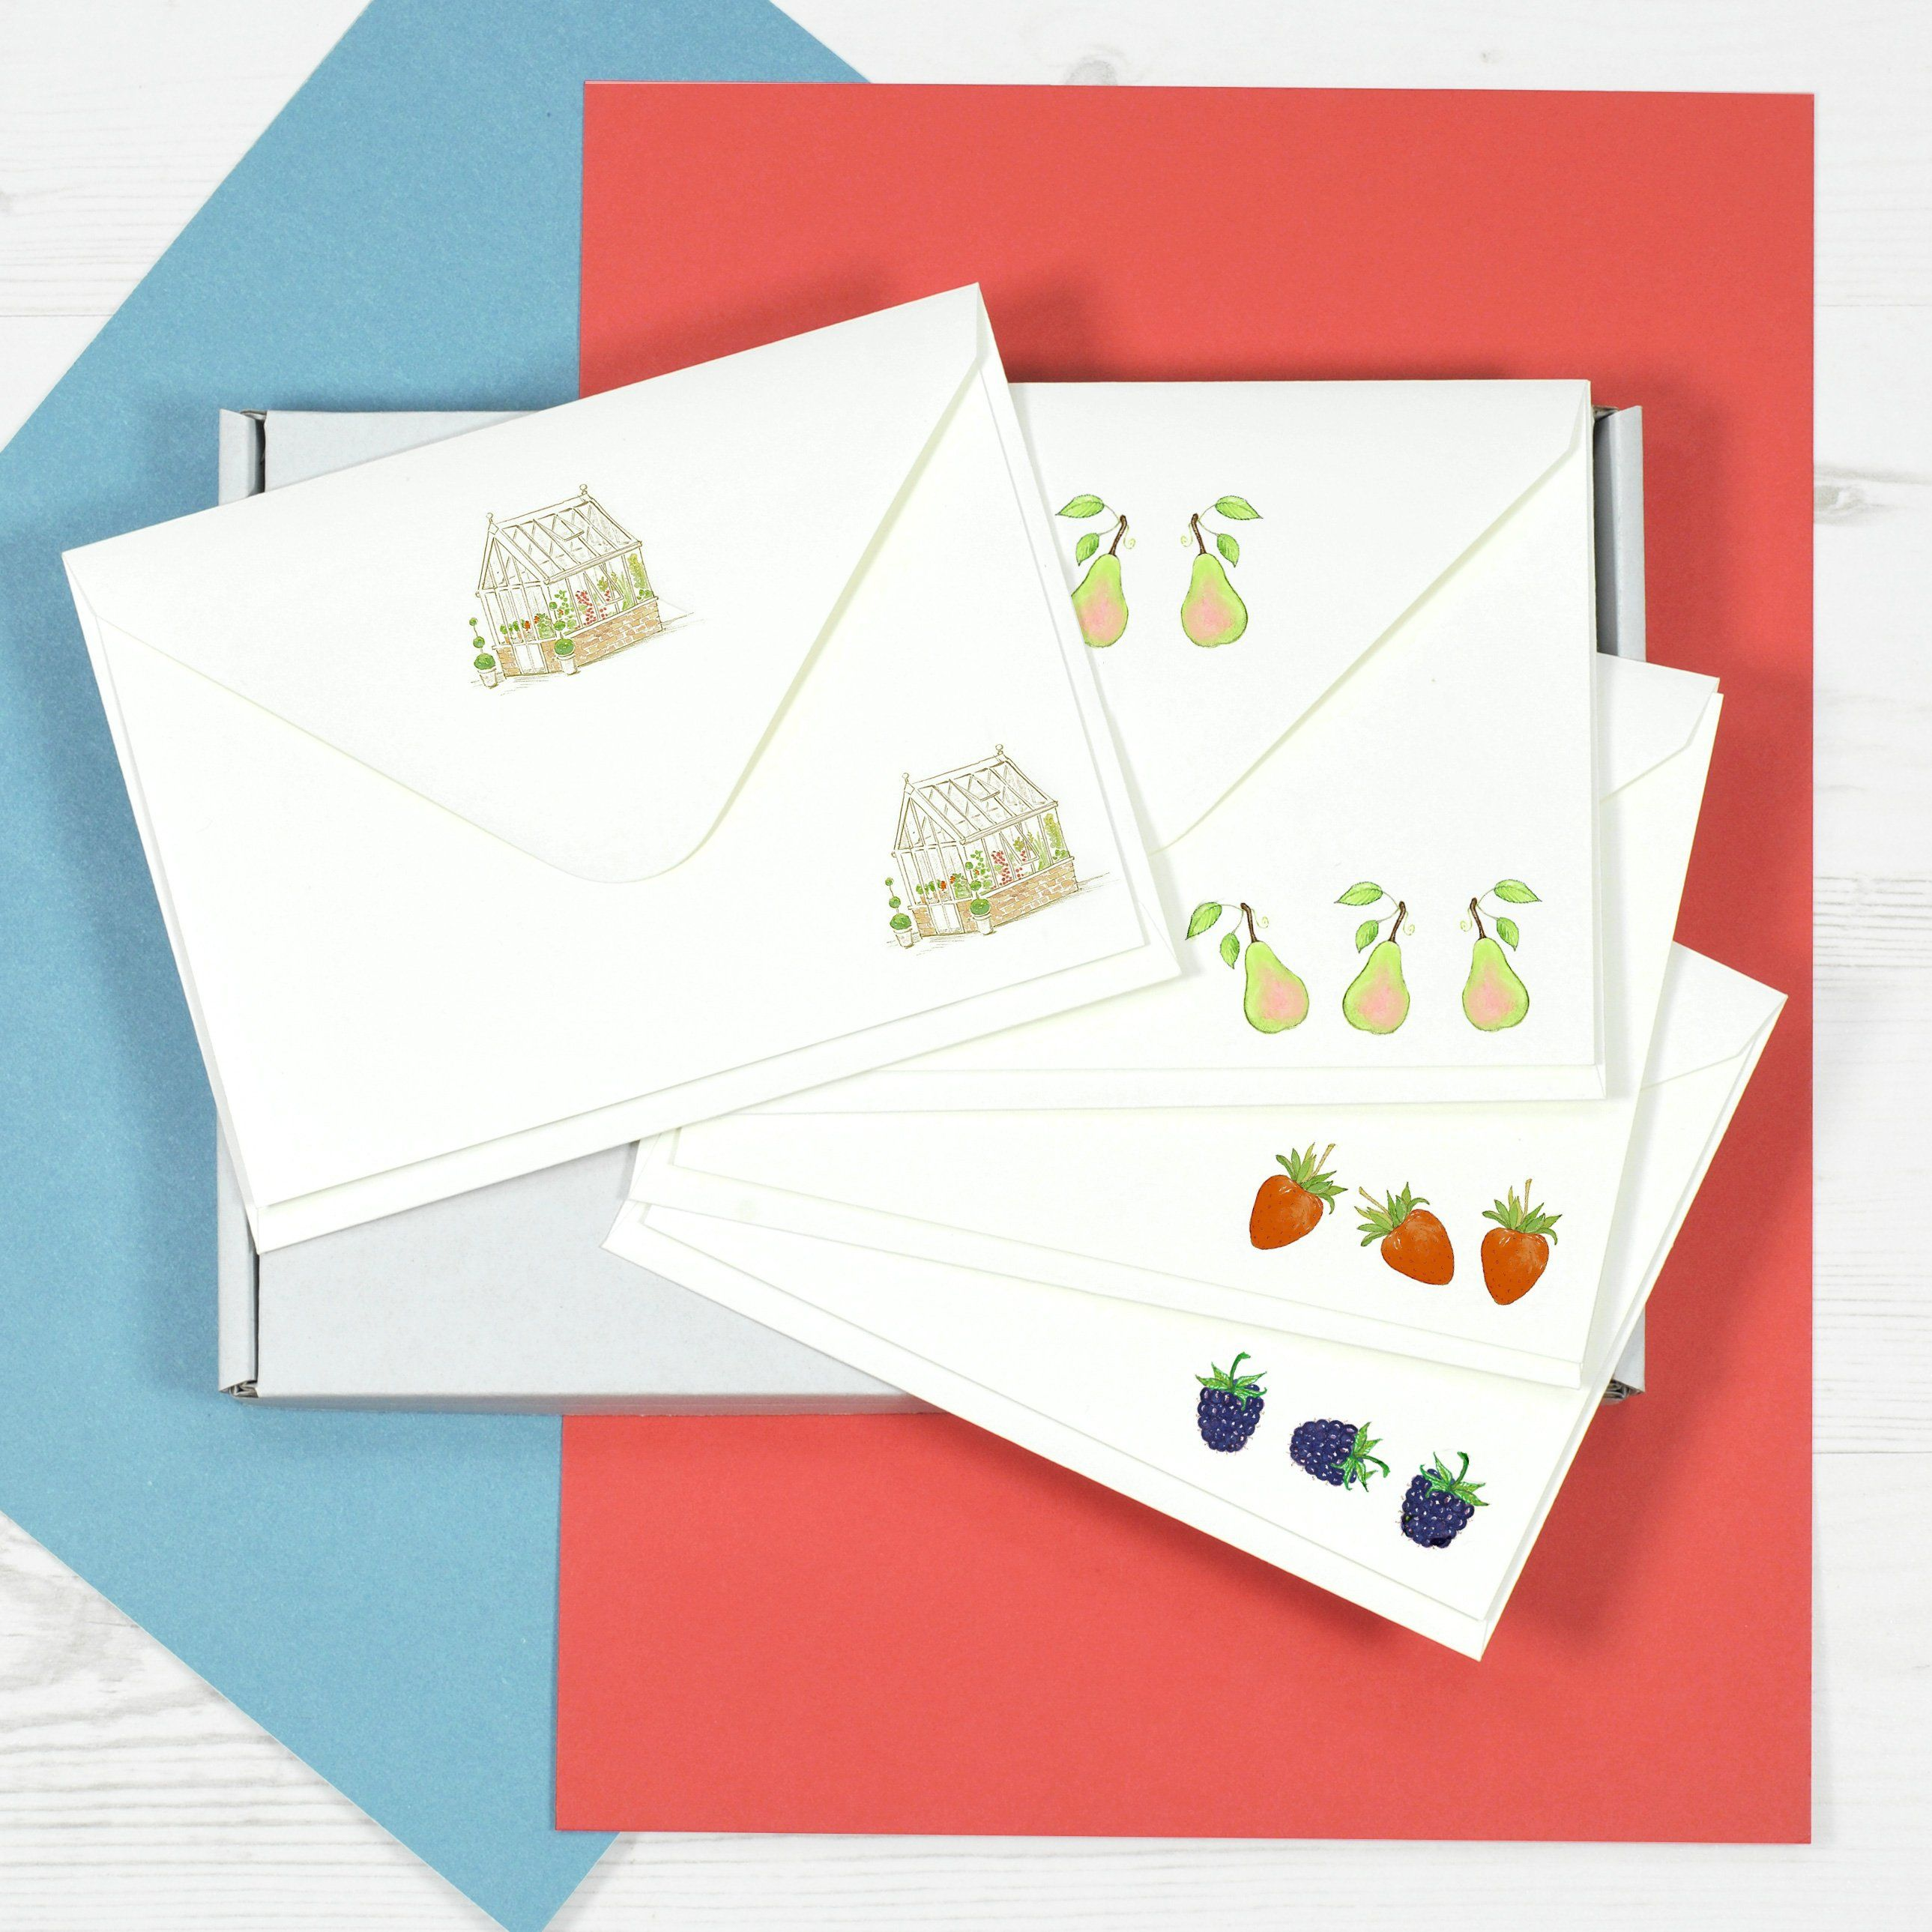 Stationery Set for Gardeners - Single Post Box